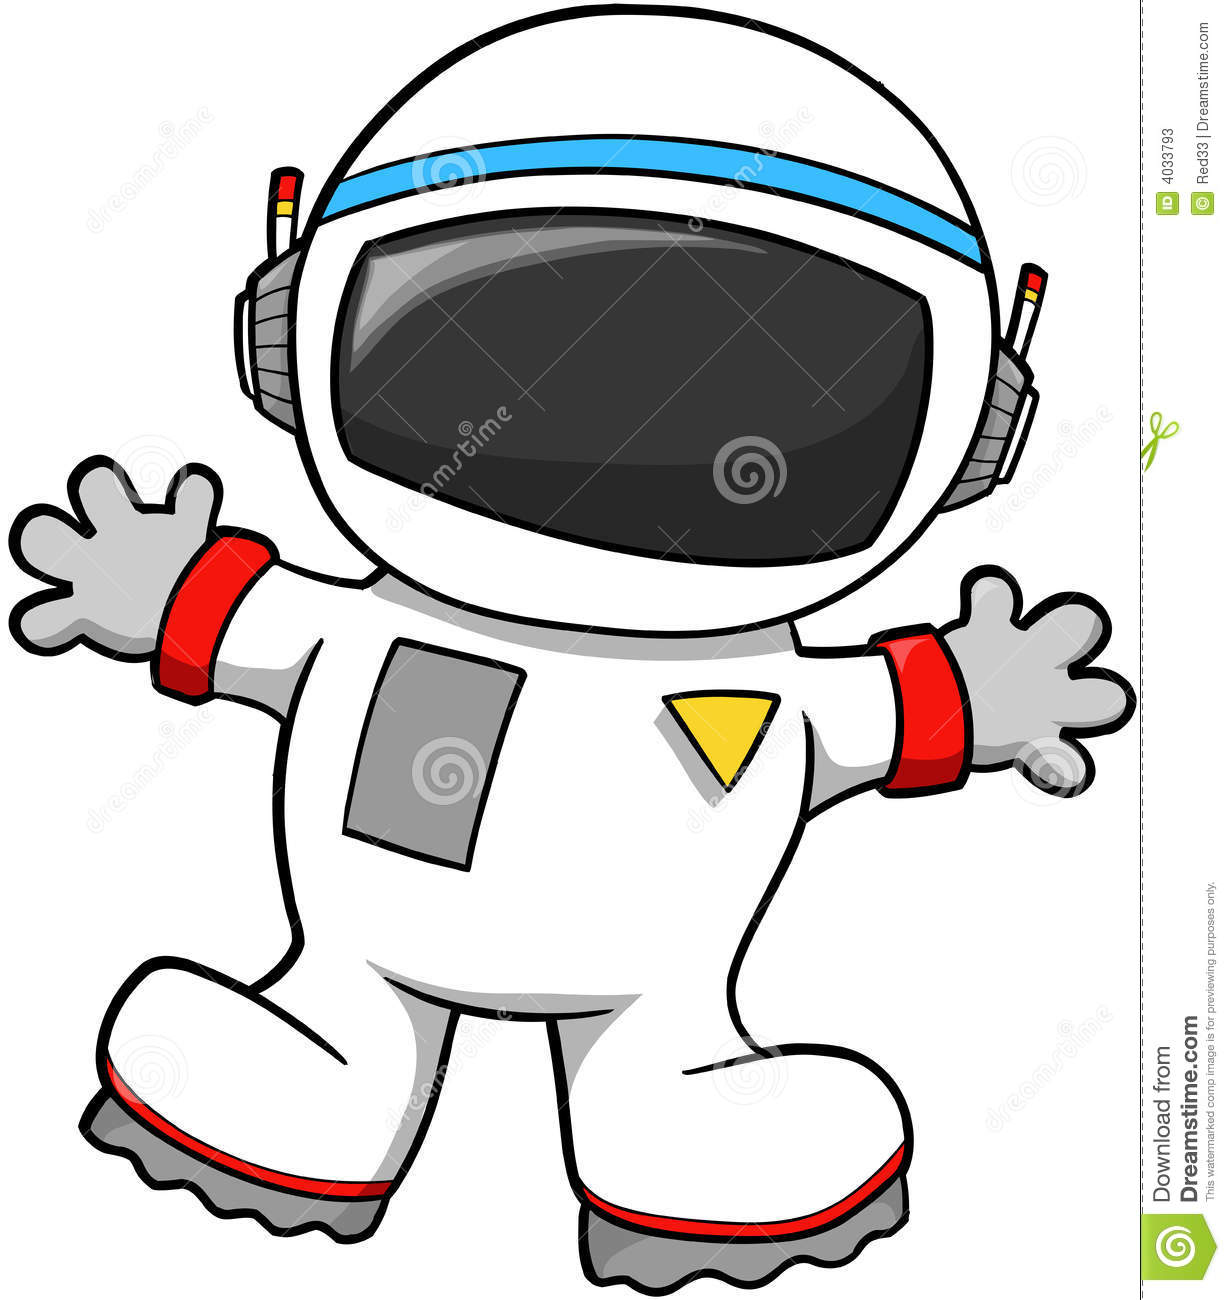 Astronaut clipart #20, Download drawings